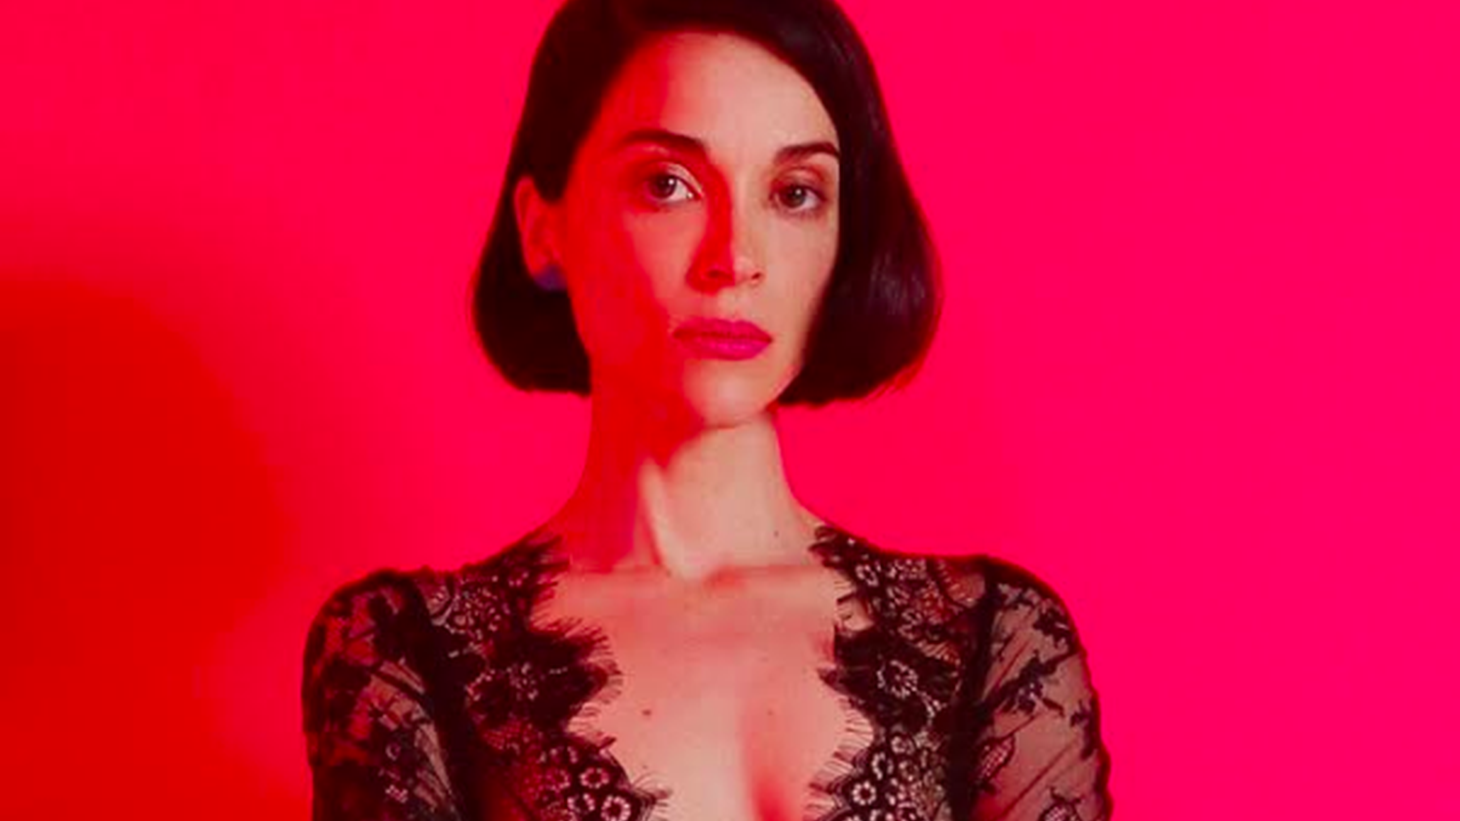 St. Vincent (aka Annie Clark) stops by for a short acoustic set at 10am. The art pop star will play songs from her critically acclaimed album MASSEDUCTION.